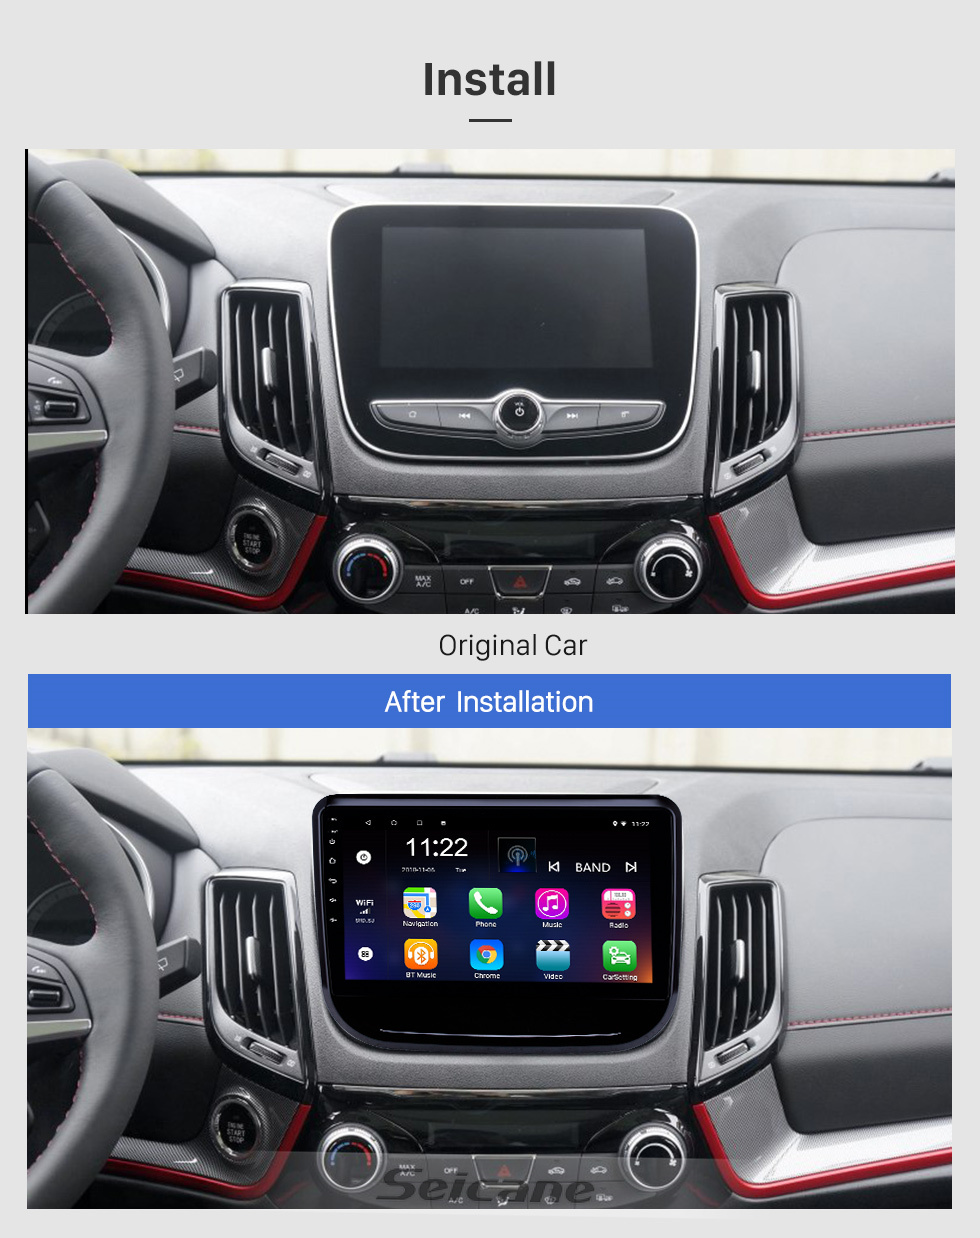 Seicane 10.1 inch Android 10.0 GPS Navigation Radio for 2017-2018 Changan CS55 with HD Touchscreen Bluetooth USB support Carplay TPMS